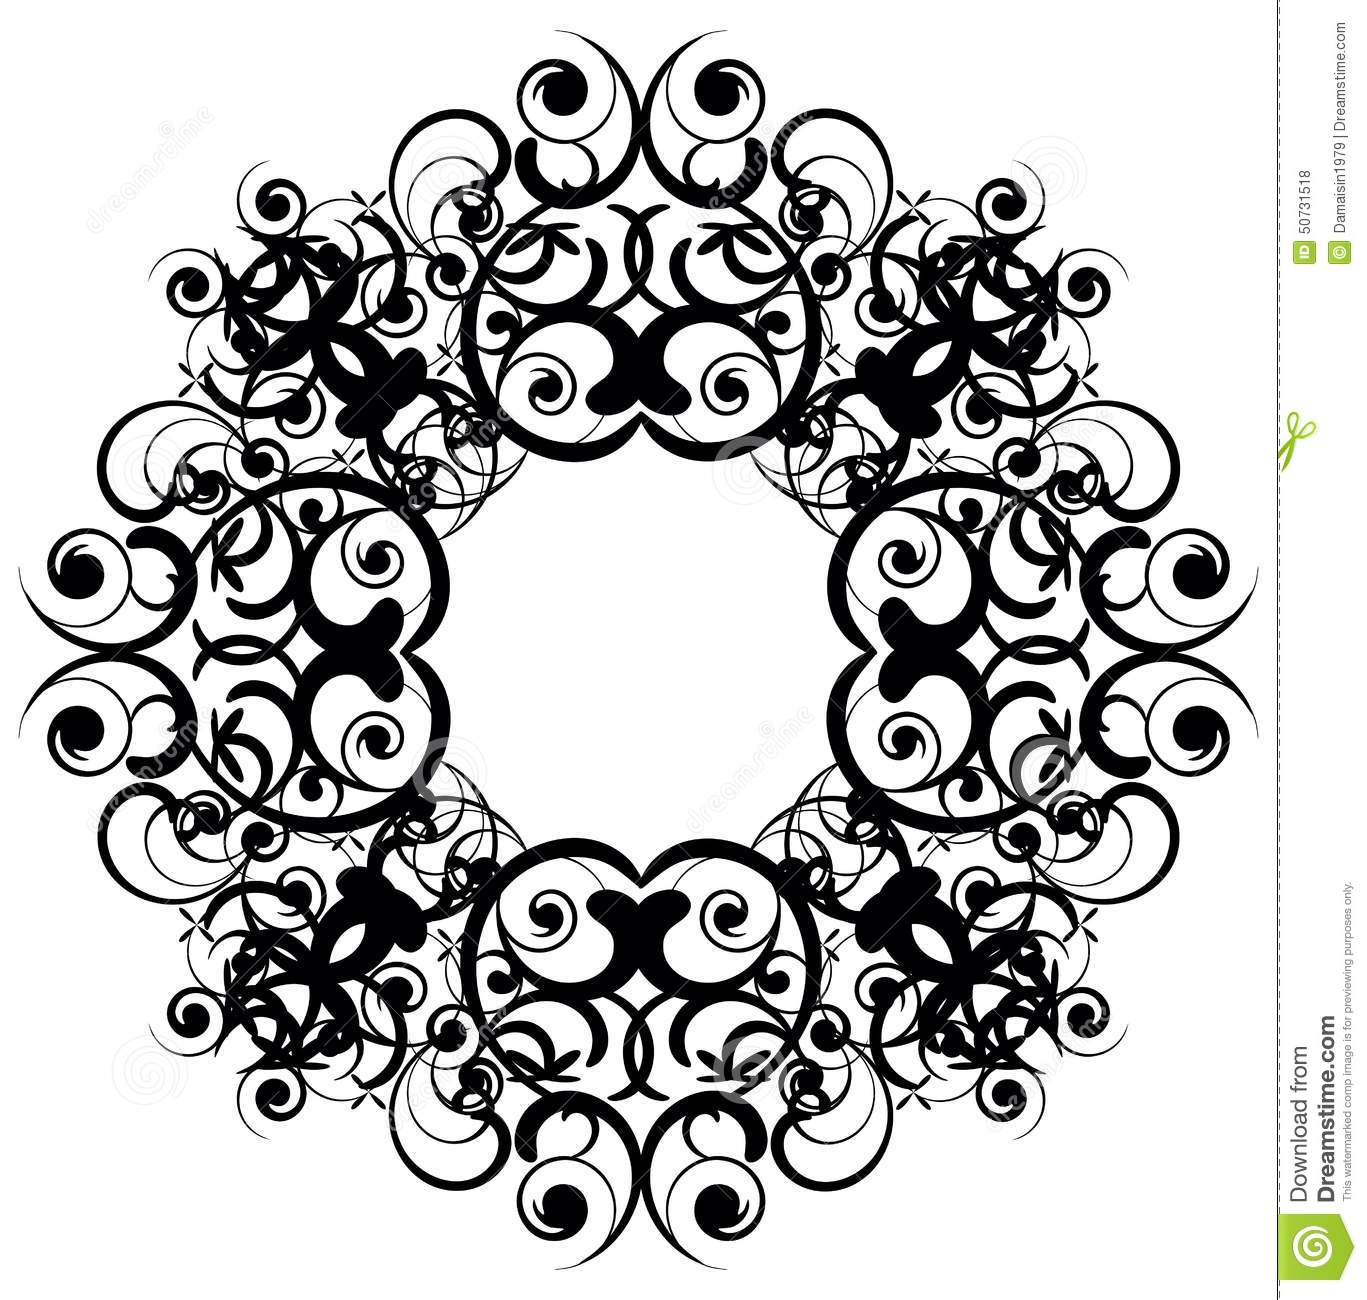 Calligraphy Penmanship Curly Baroque Frame Black Vector Art